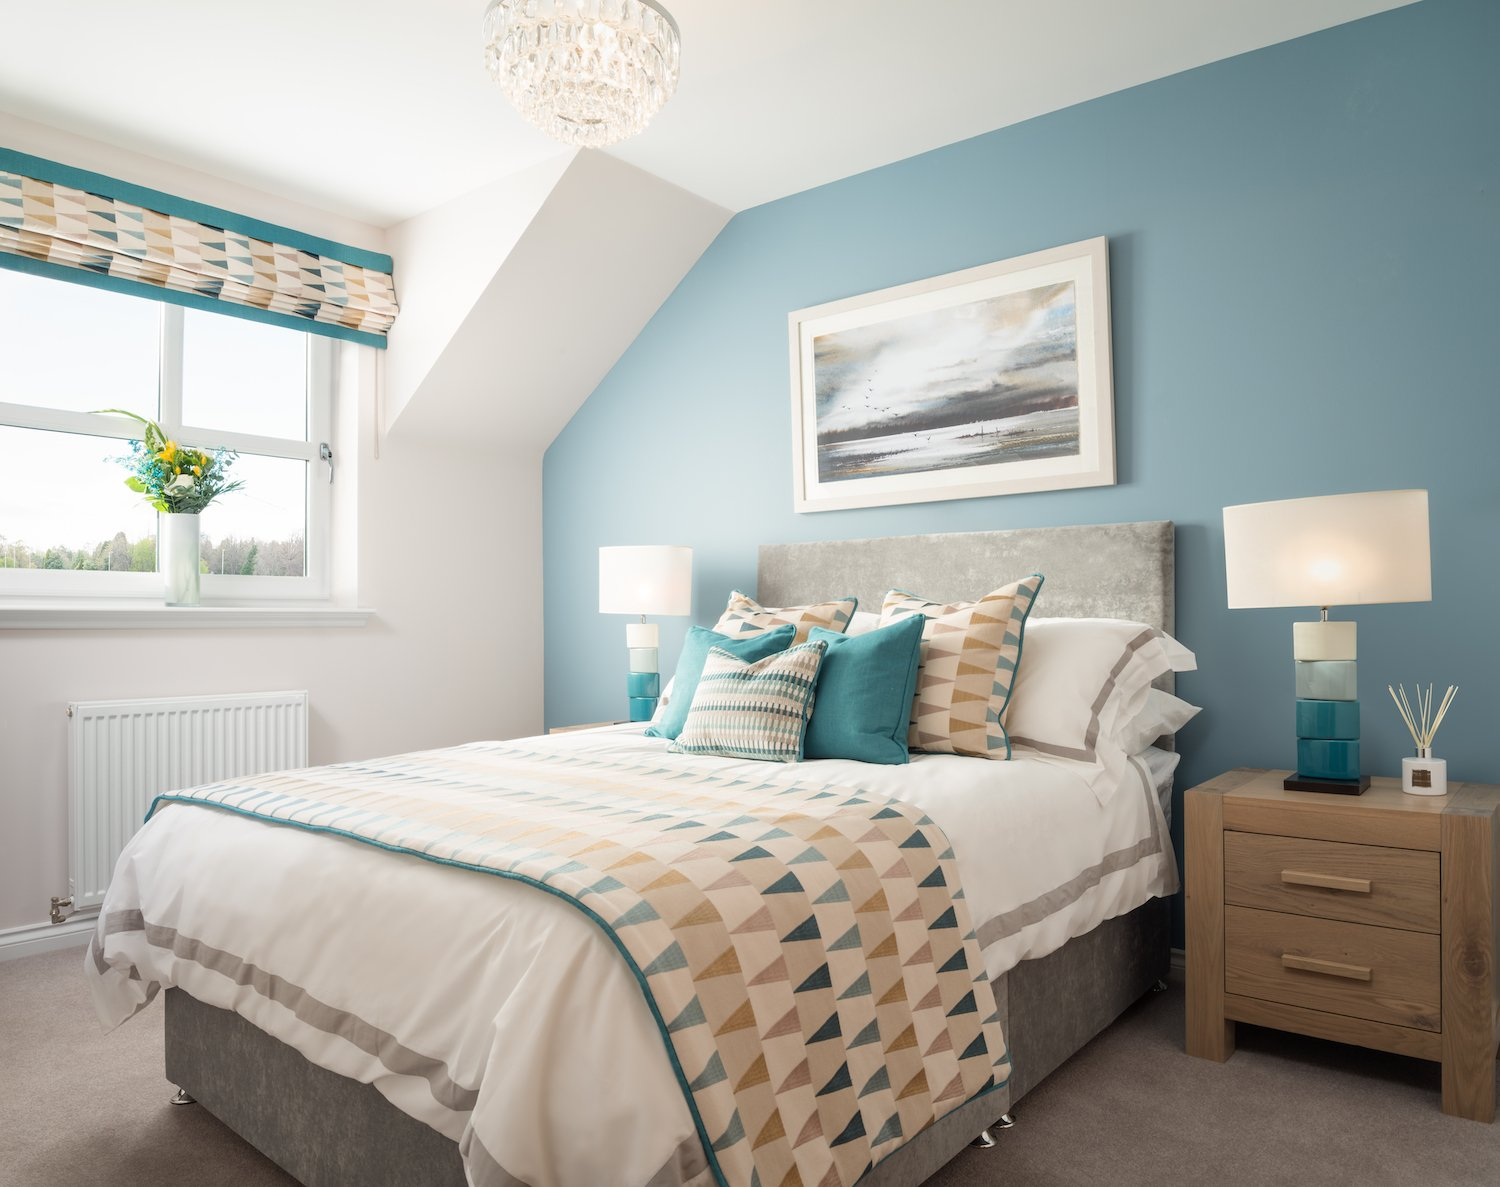 Monymusk-Keir-Bedroom-2-ZZ